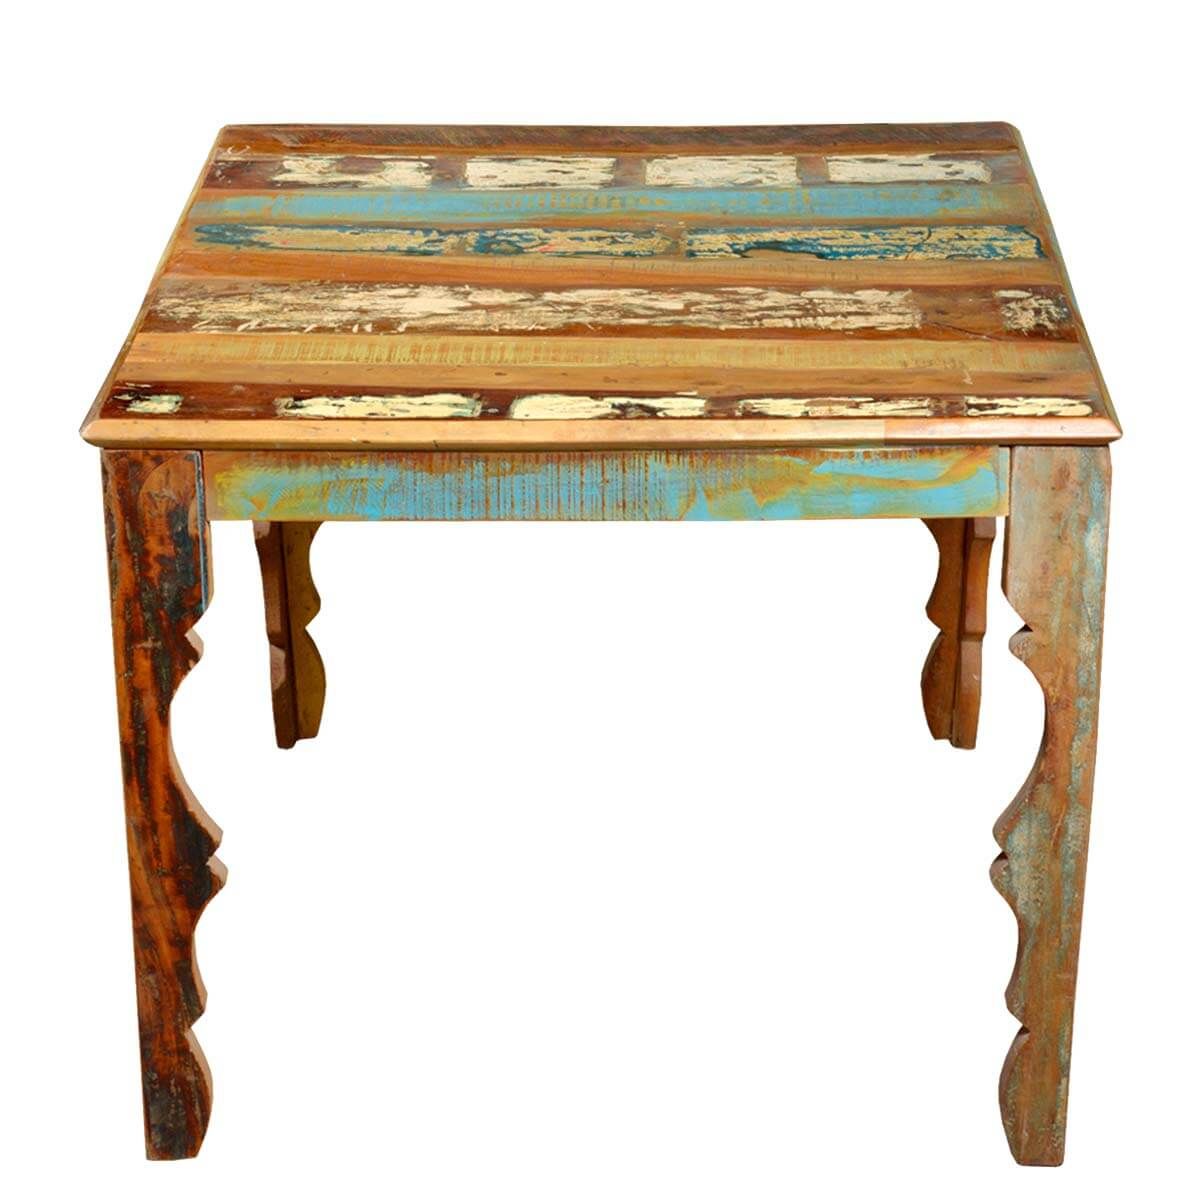 Rustic reclaimed wood 36 square dining table w decorative for Ornamental centrepiece for a dining table